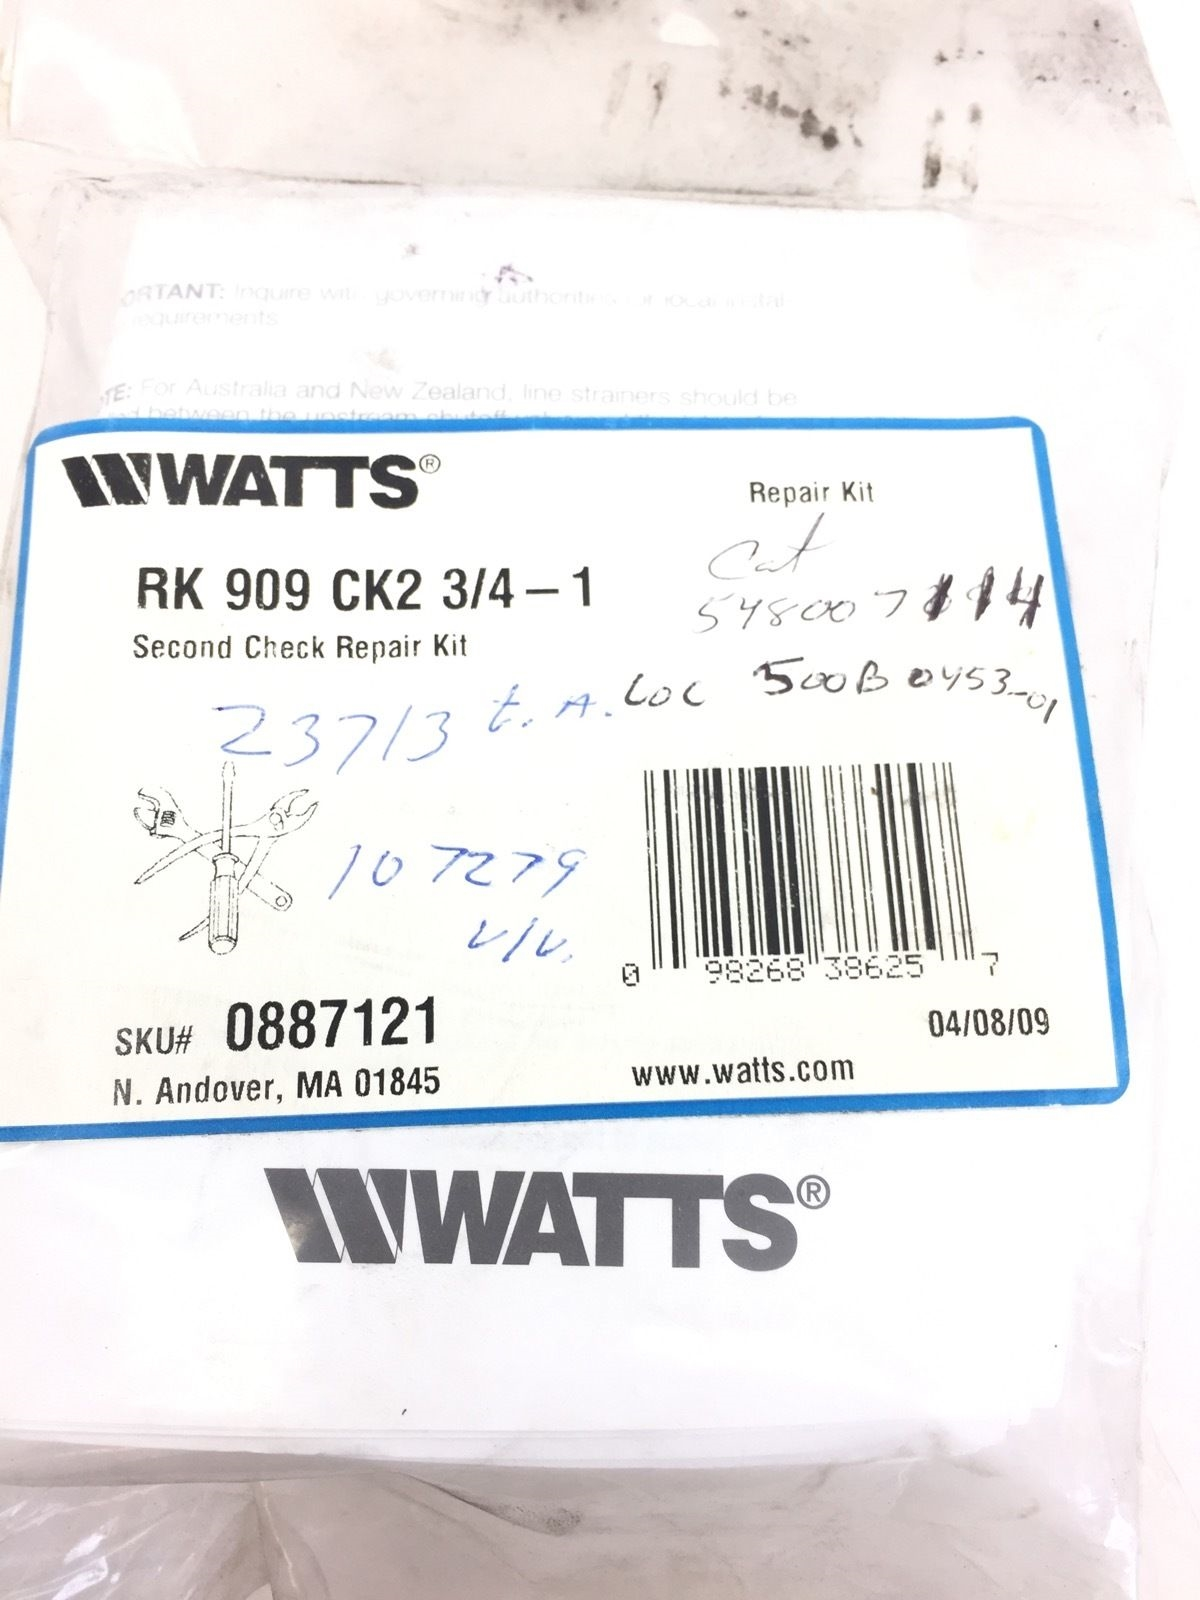 WATTS RK 909 CK2 3/4-1 SECOND CHECK REPAIR KIT 0887121 NEW IN BOX! (A415) 2